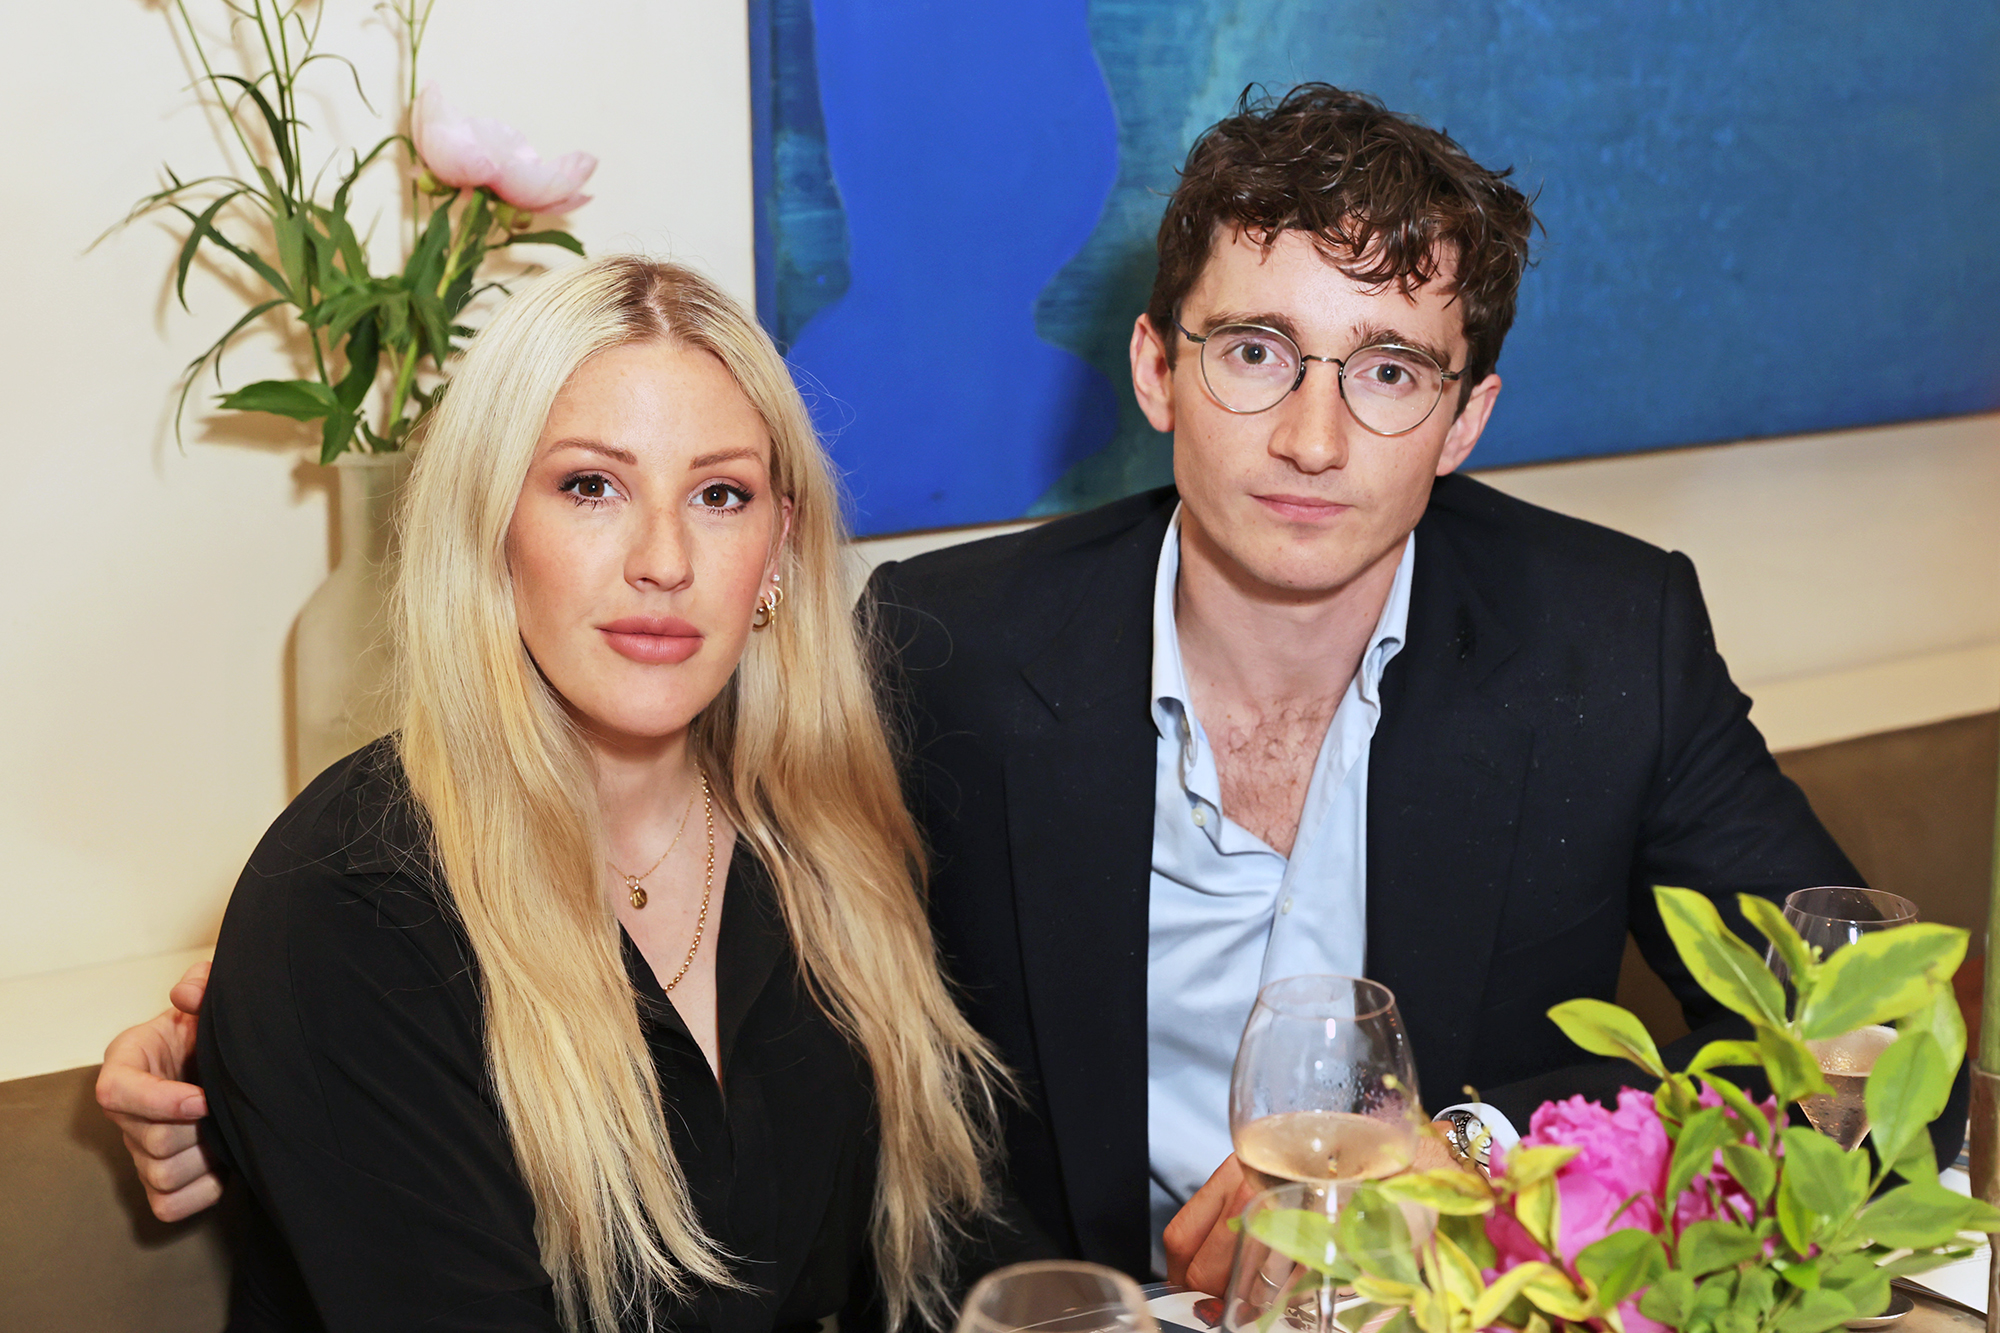 """Ellie Goulding and Caspar Jopling attend a private view, dinner and auction of multi-disciplinary artist Lily Lewis' new collection """"Safe Places"""" in partnership with Petersham Nurseries in support of Refuge at Carriage Hall at on June 17, 2021 in London, England."""